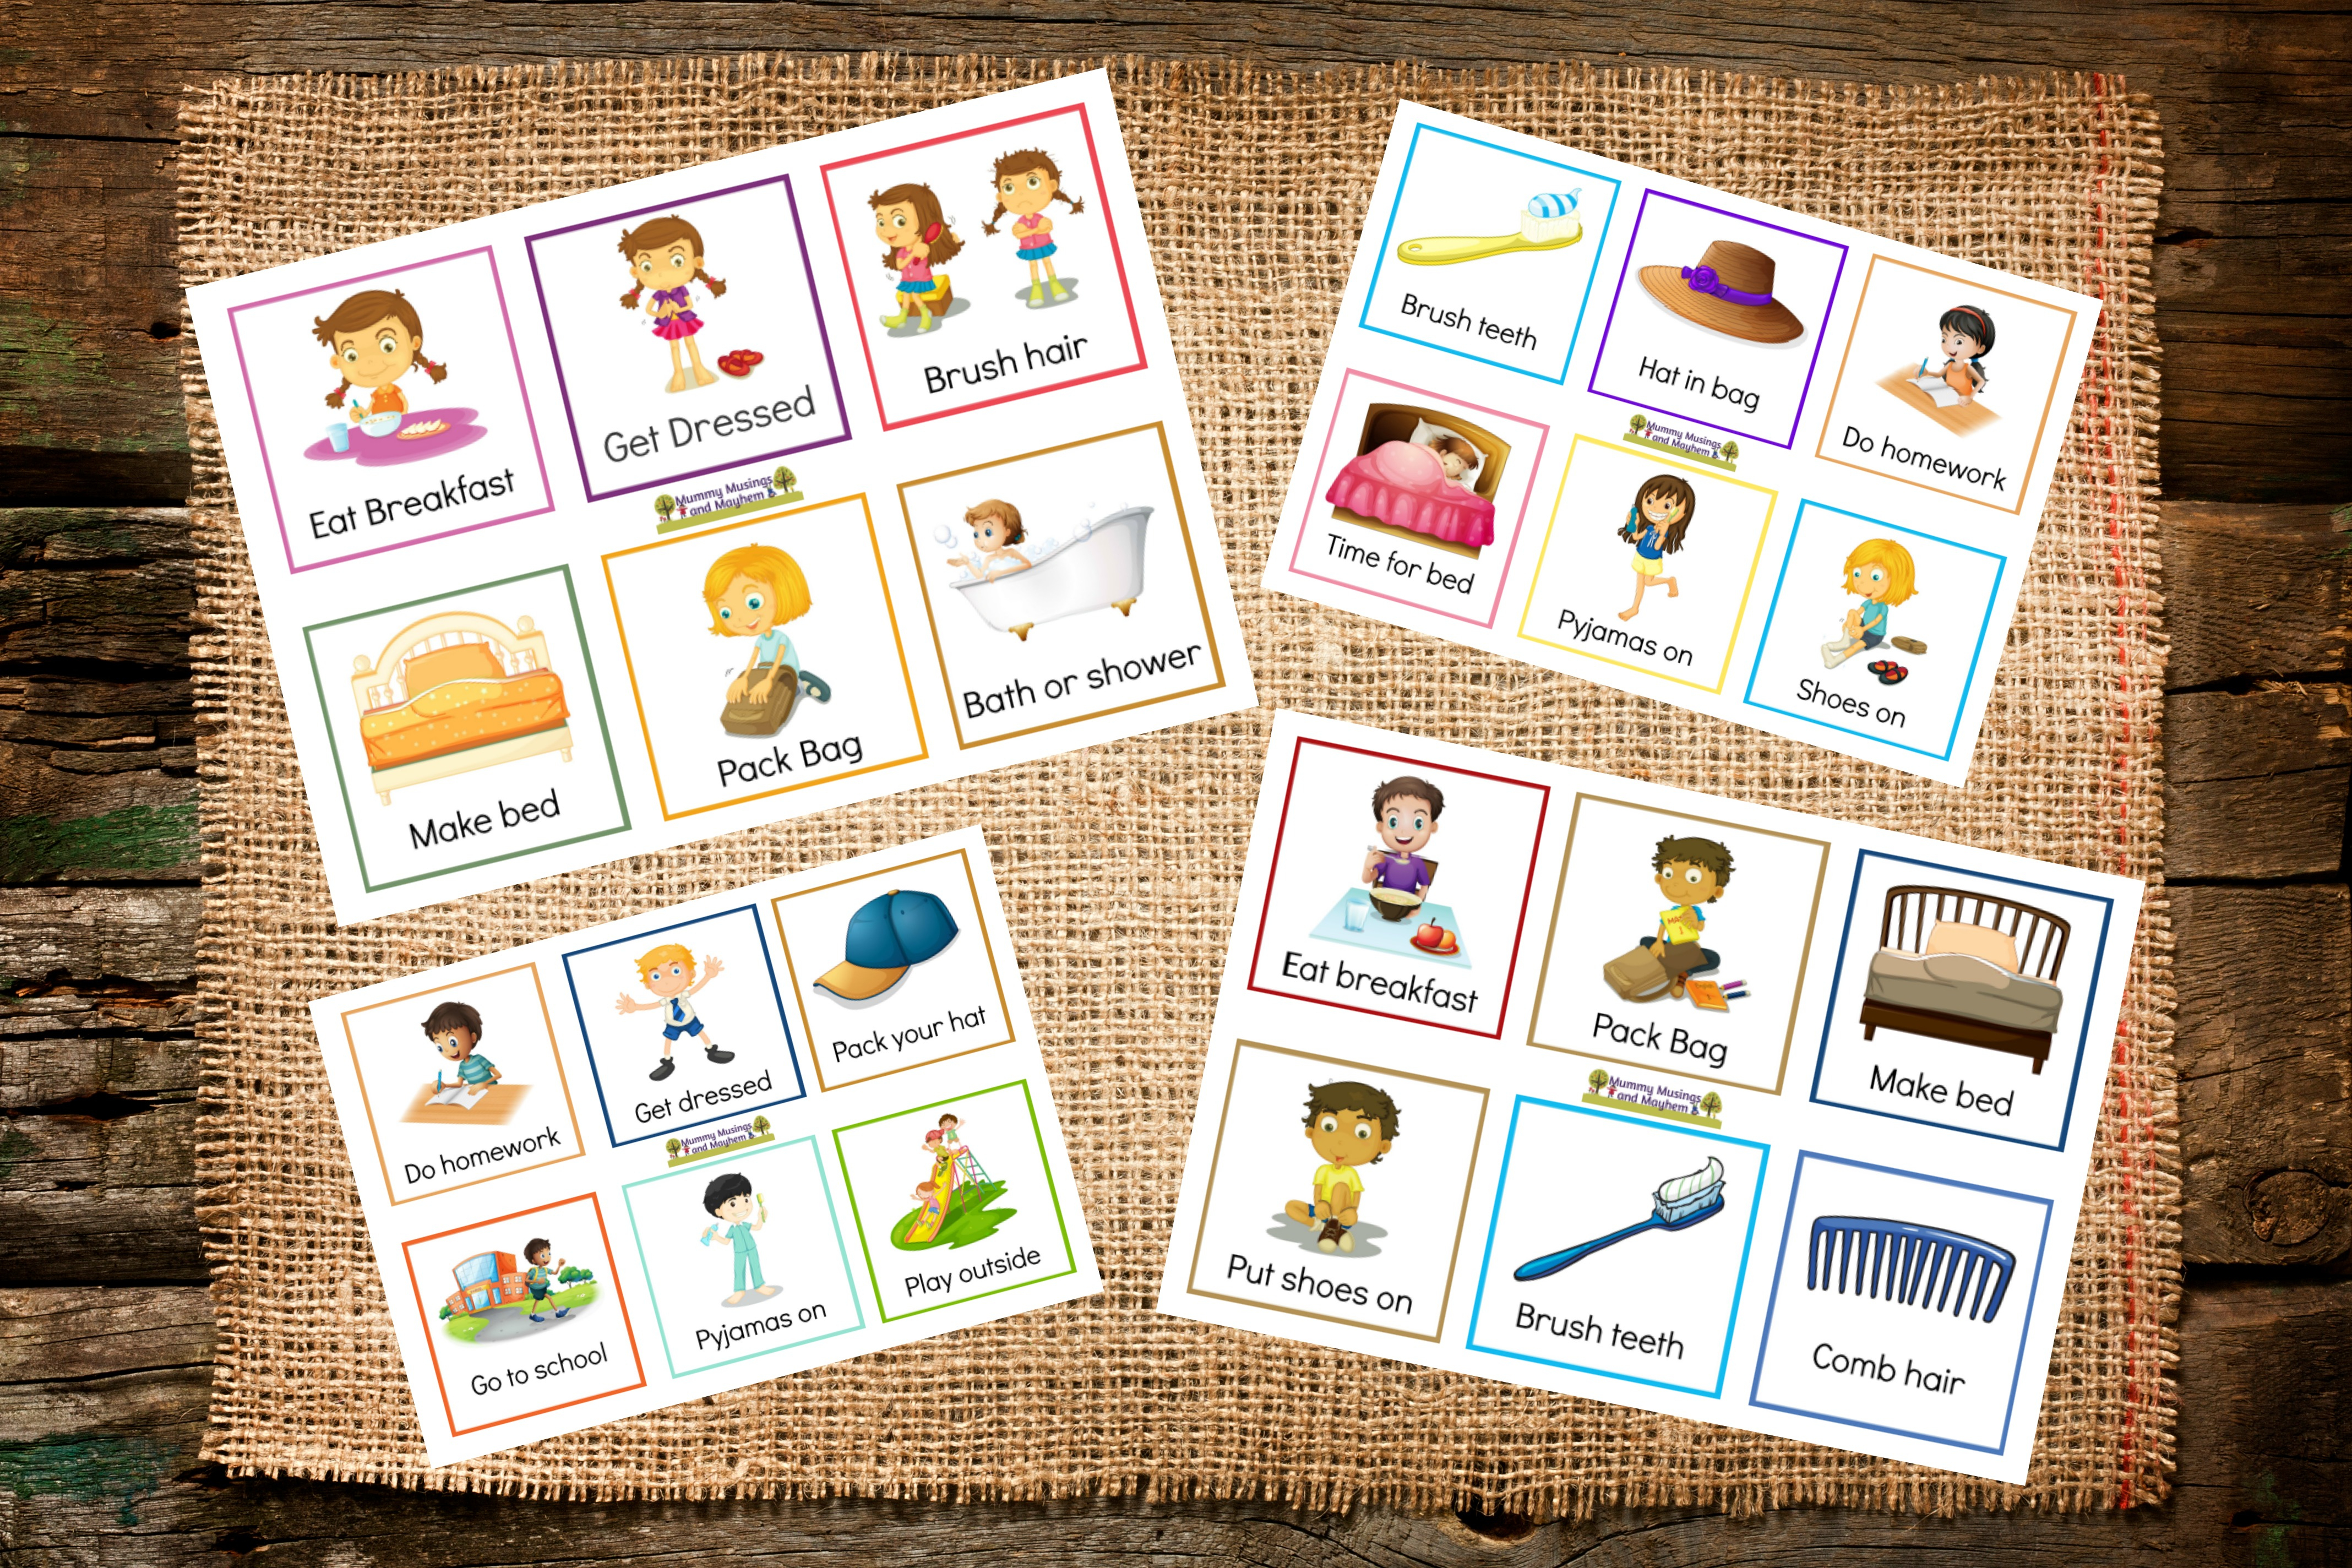 Back To School Routines - Free Printable Cards To Make It Easier - Free Printable Routine Cards